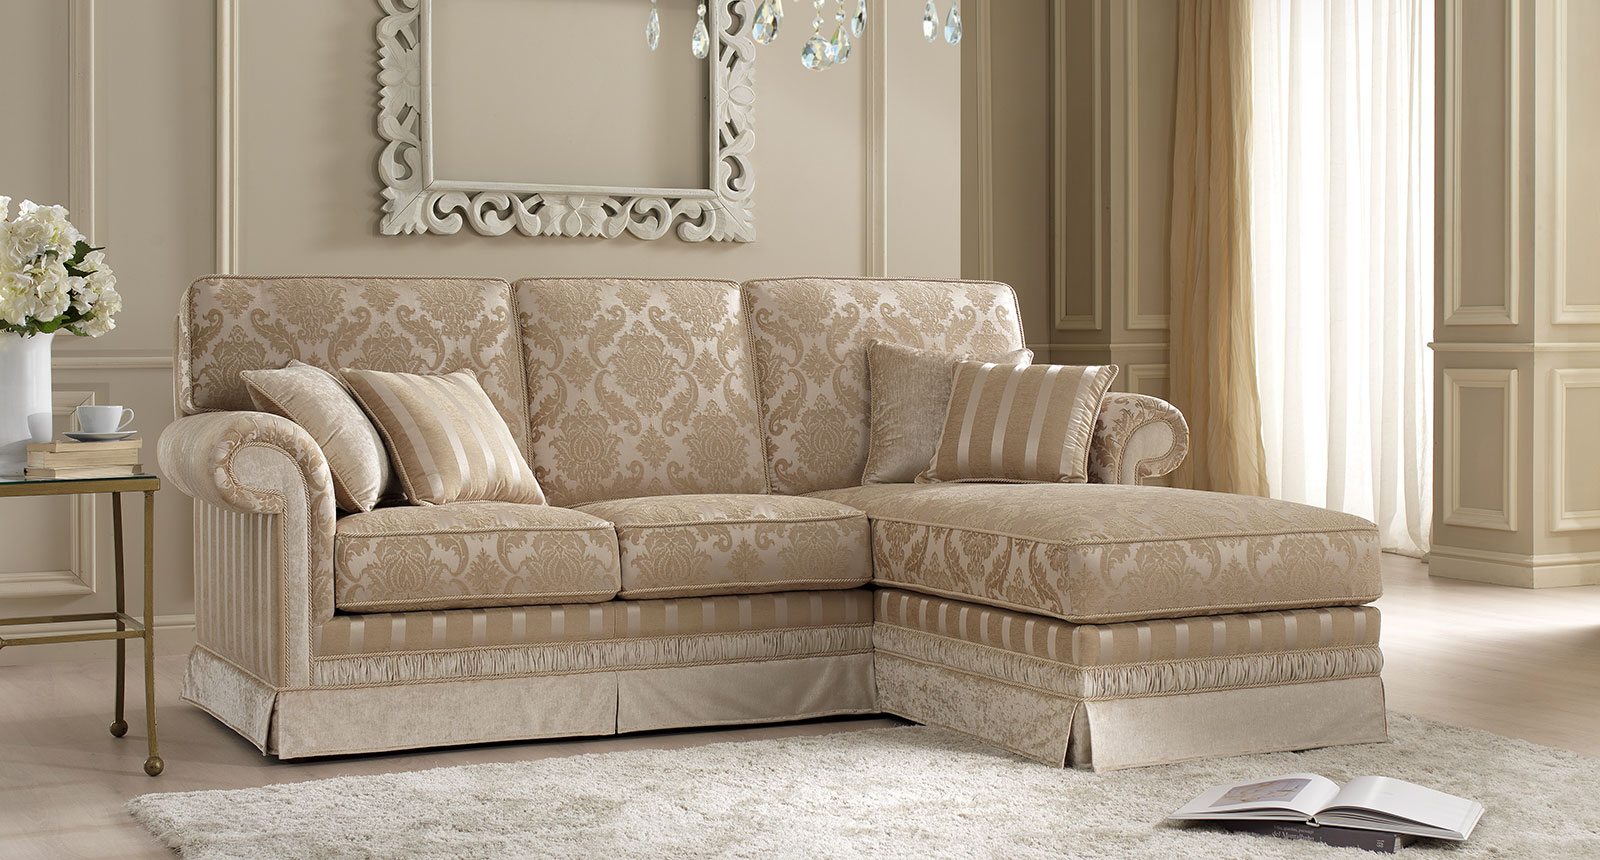 Luxury sofas by Euro Design